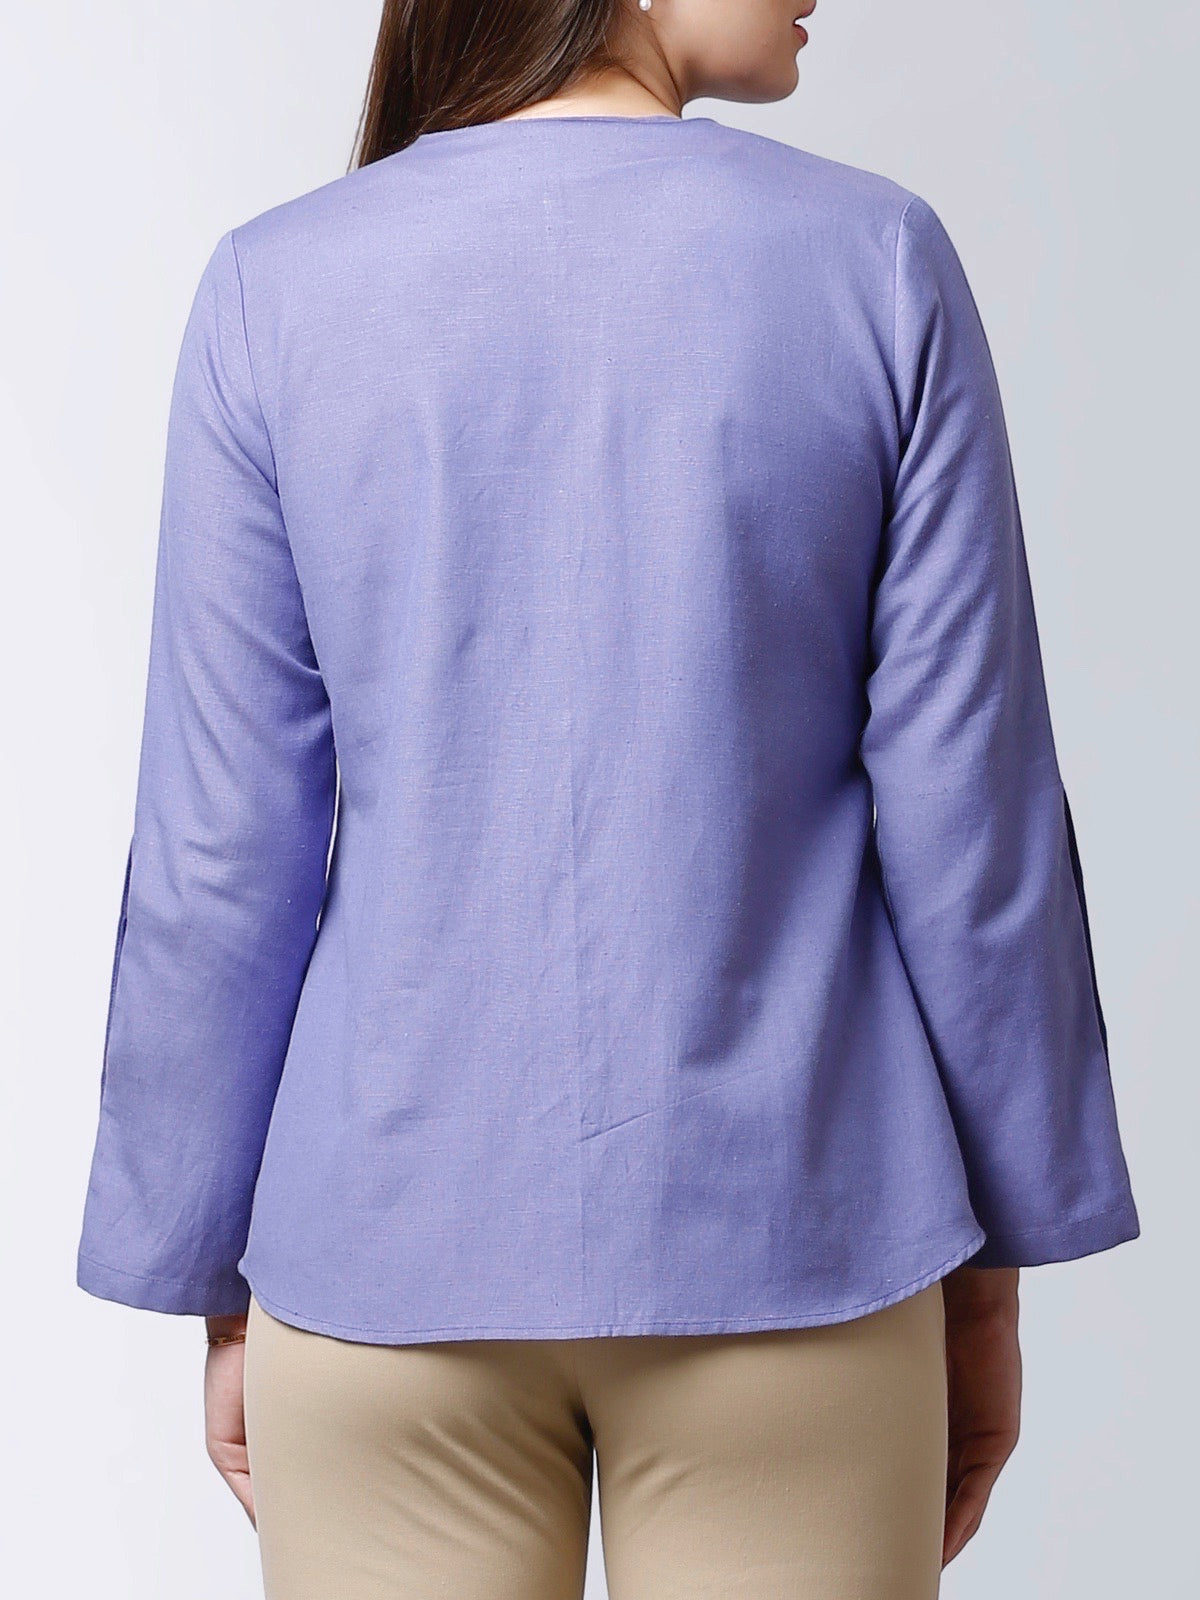 Shirt With Bell Sleeves - Blue